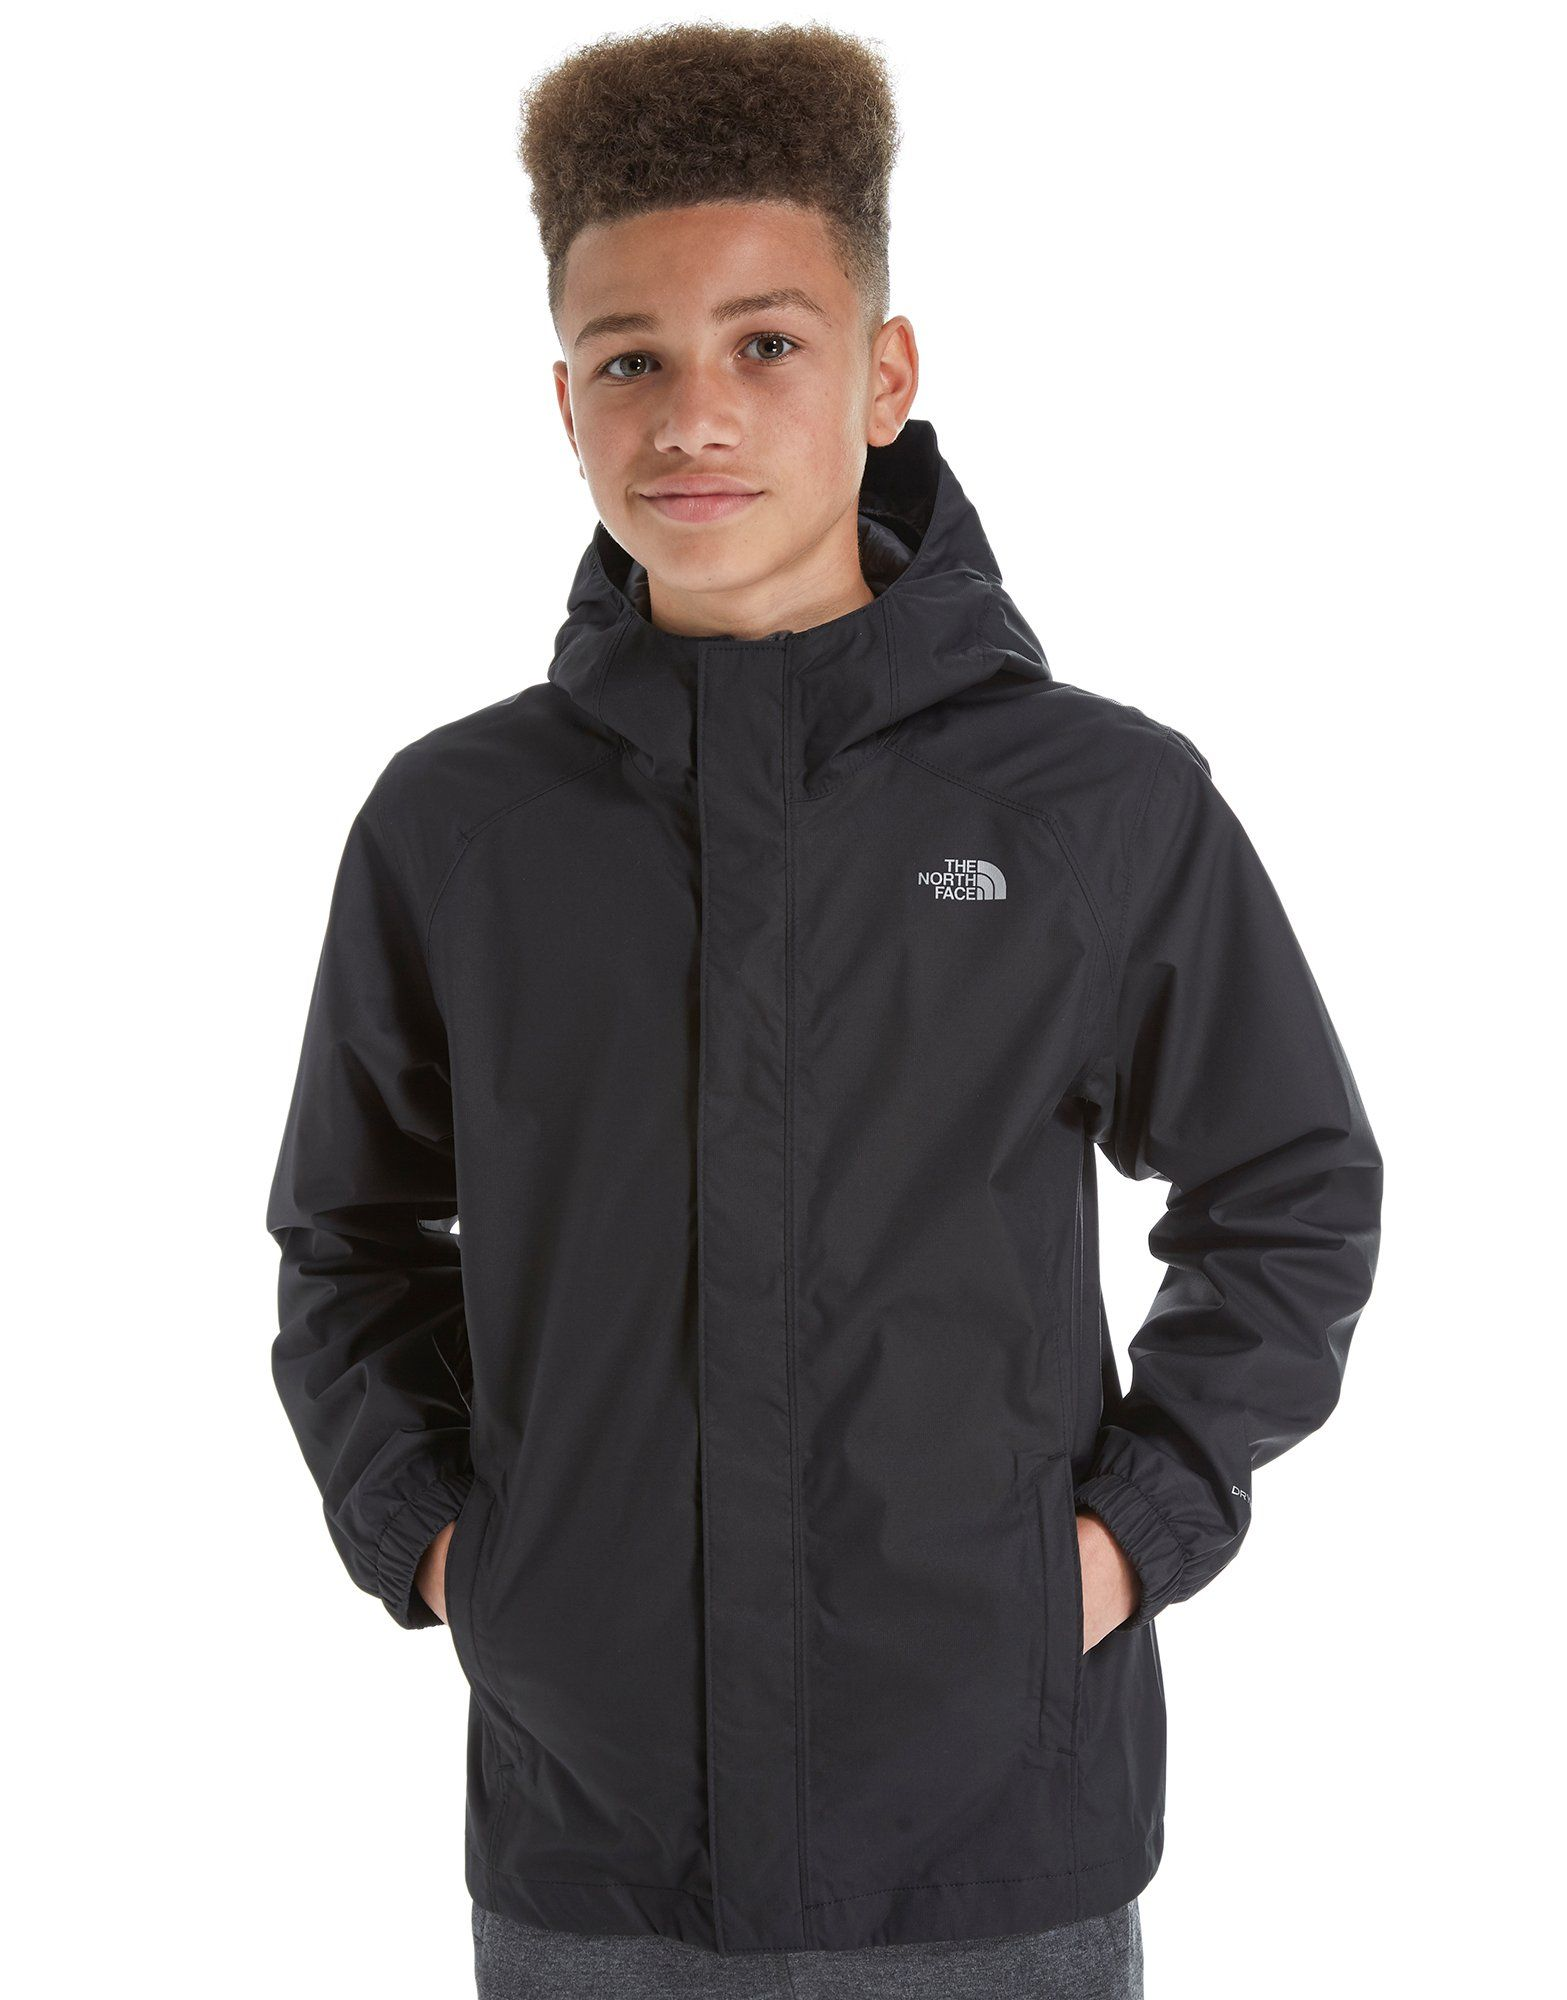 Kids Coats & Jackets | Girls & Boys Coats & Jackets | JD Sports